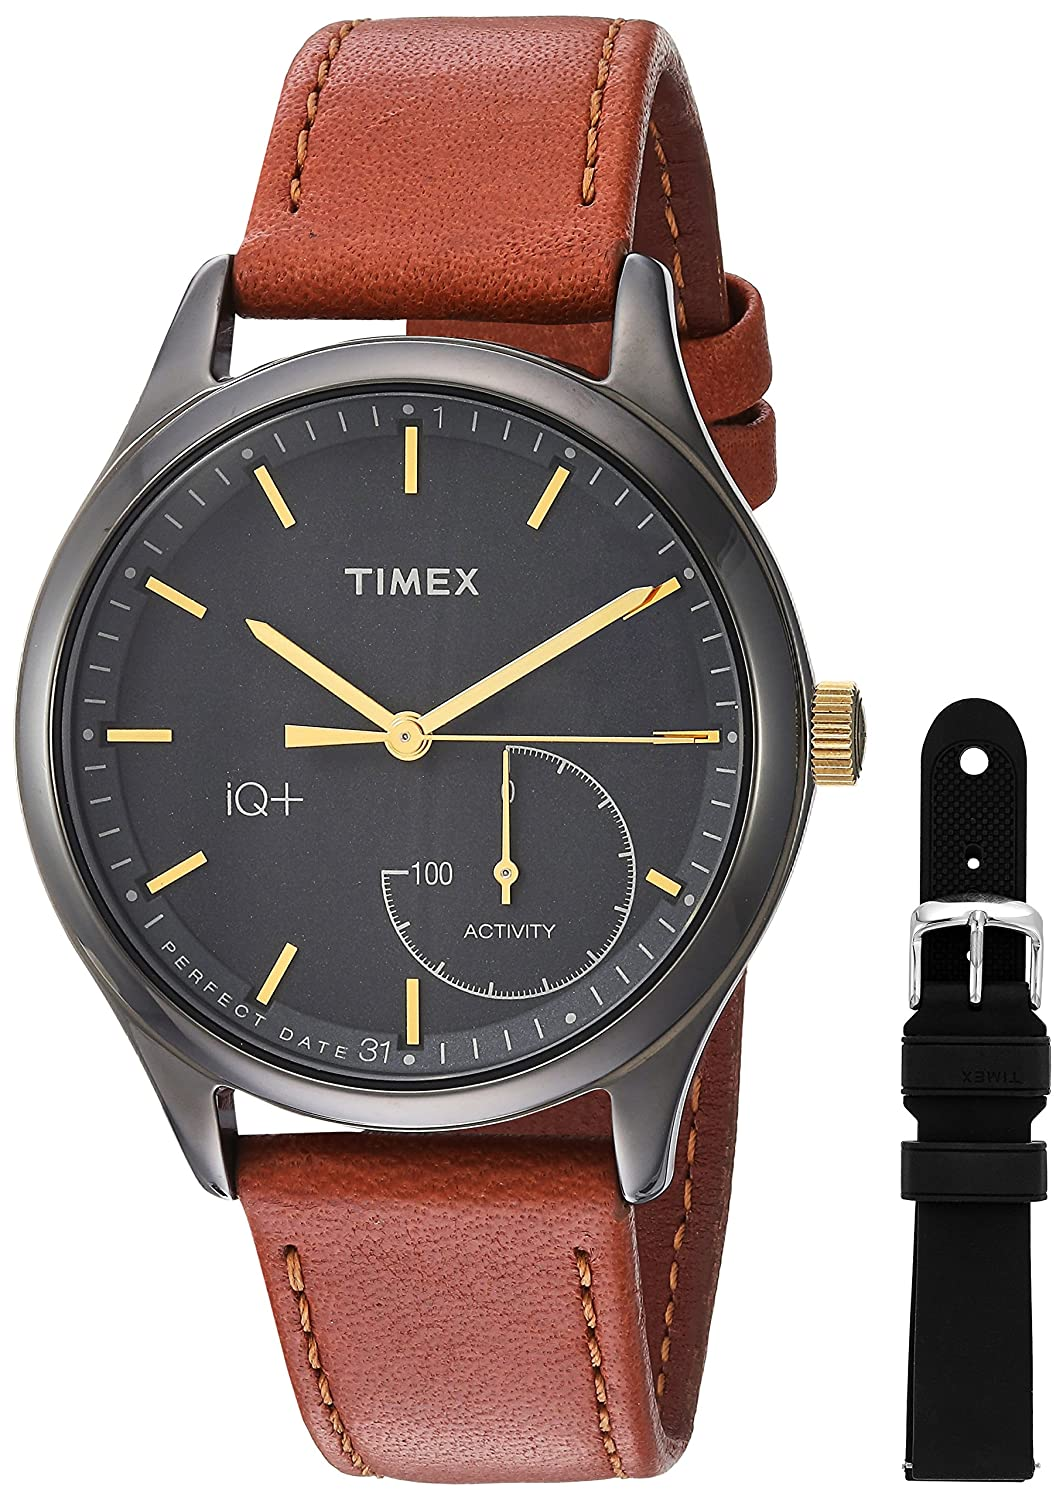 a3afa0f7a6c2 Amazon.com  Timex Women s TWG013800 IQ+ Move Activity Tracker Brown Leather  Strap Smart Watch Set With Extra Black Silicone Strap  Watches